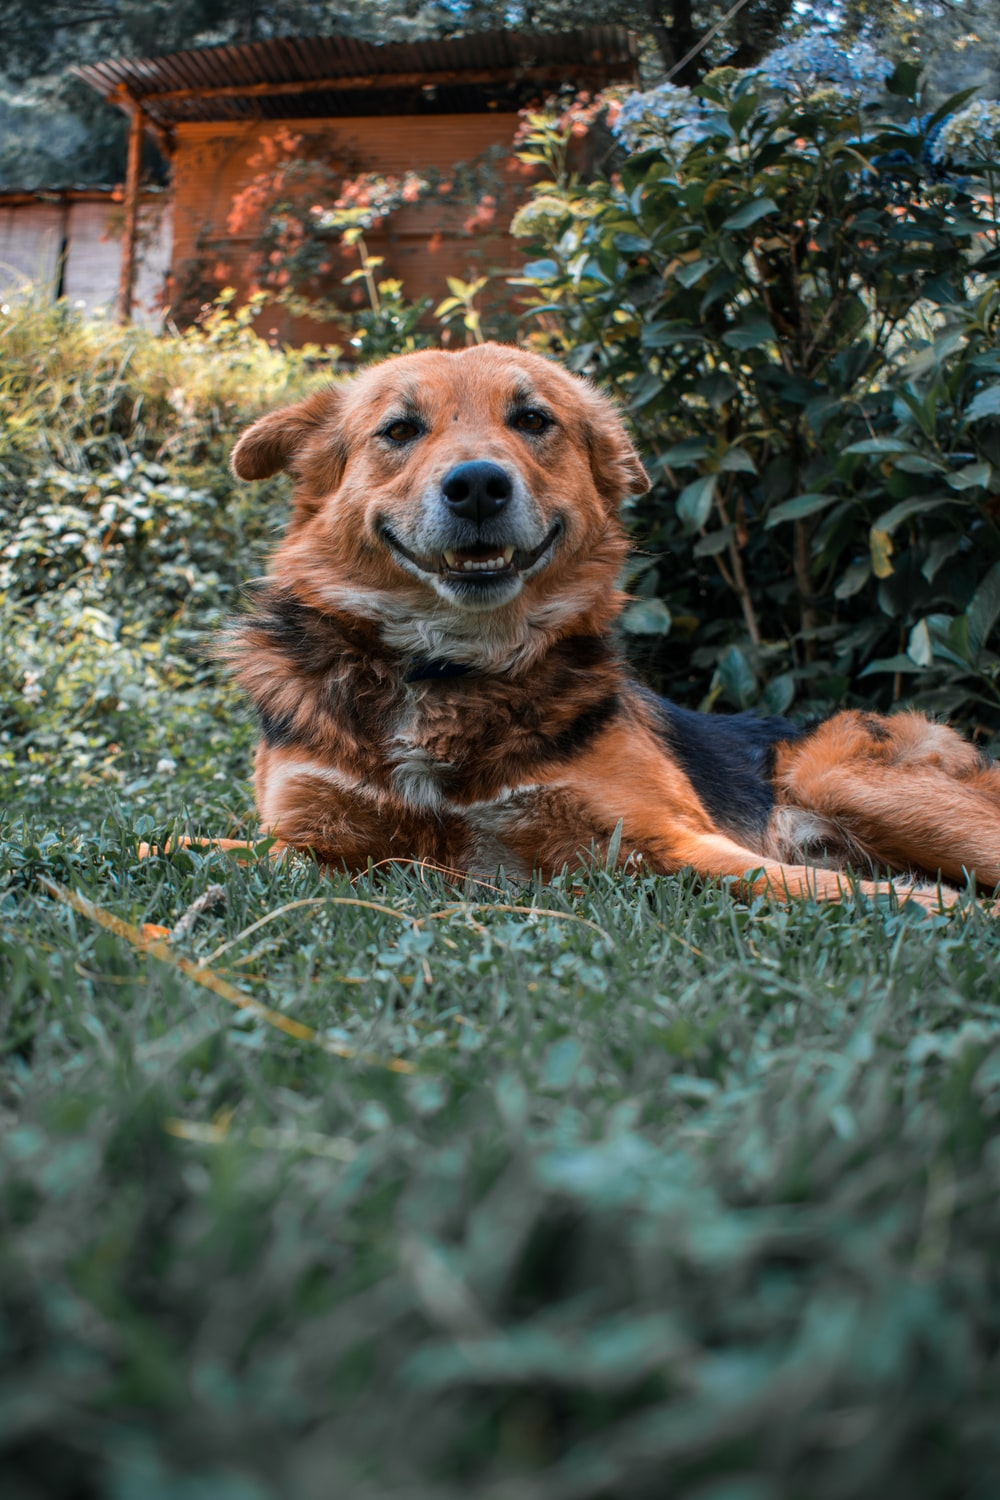 brown and black short coated dog lying on green grass during daytime